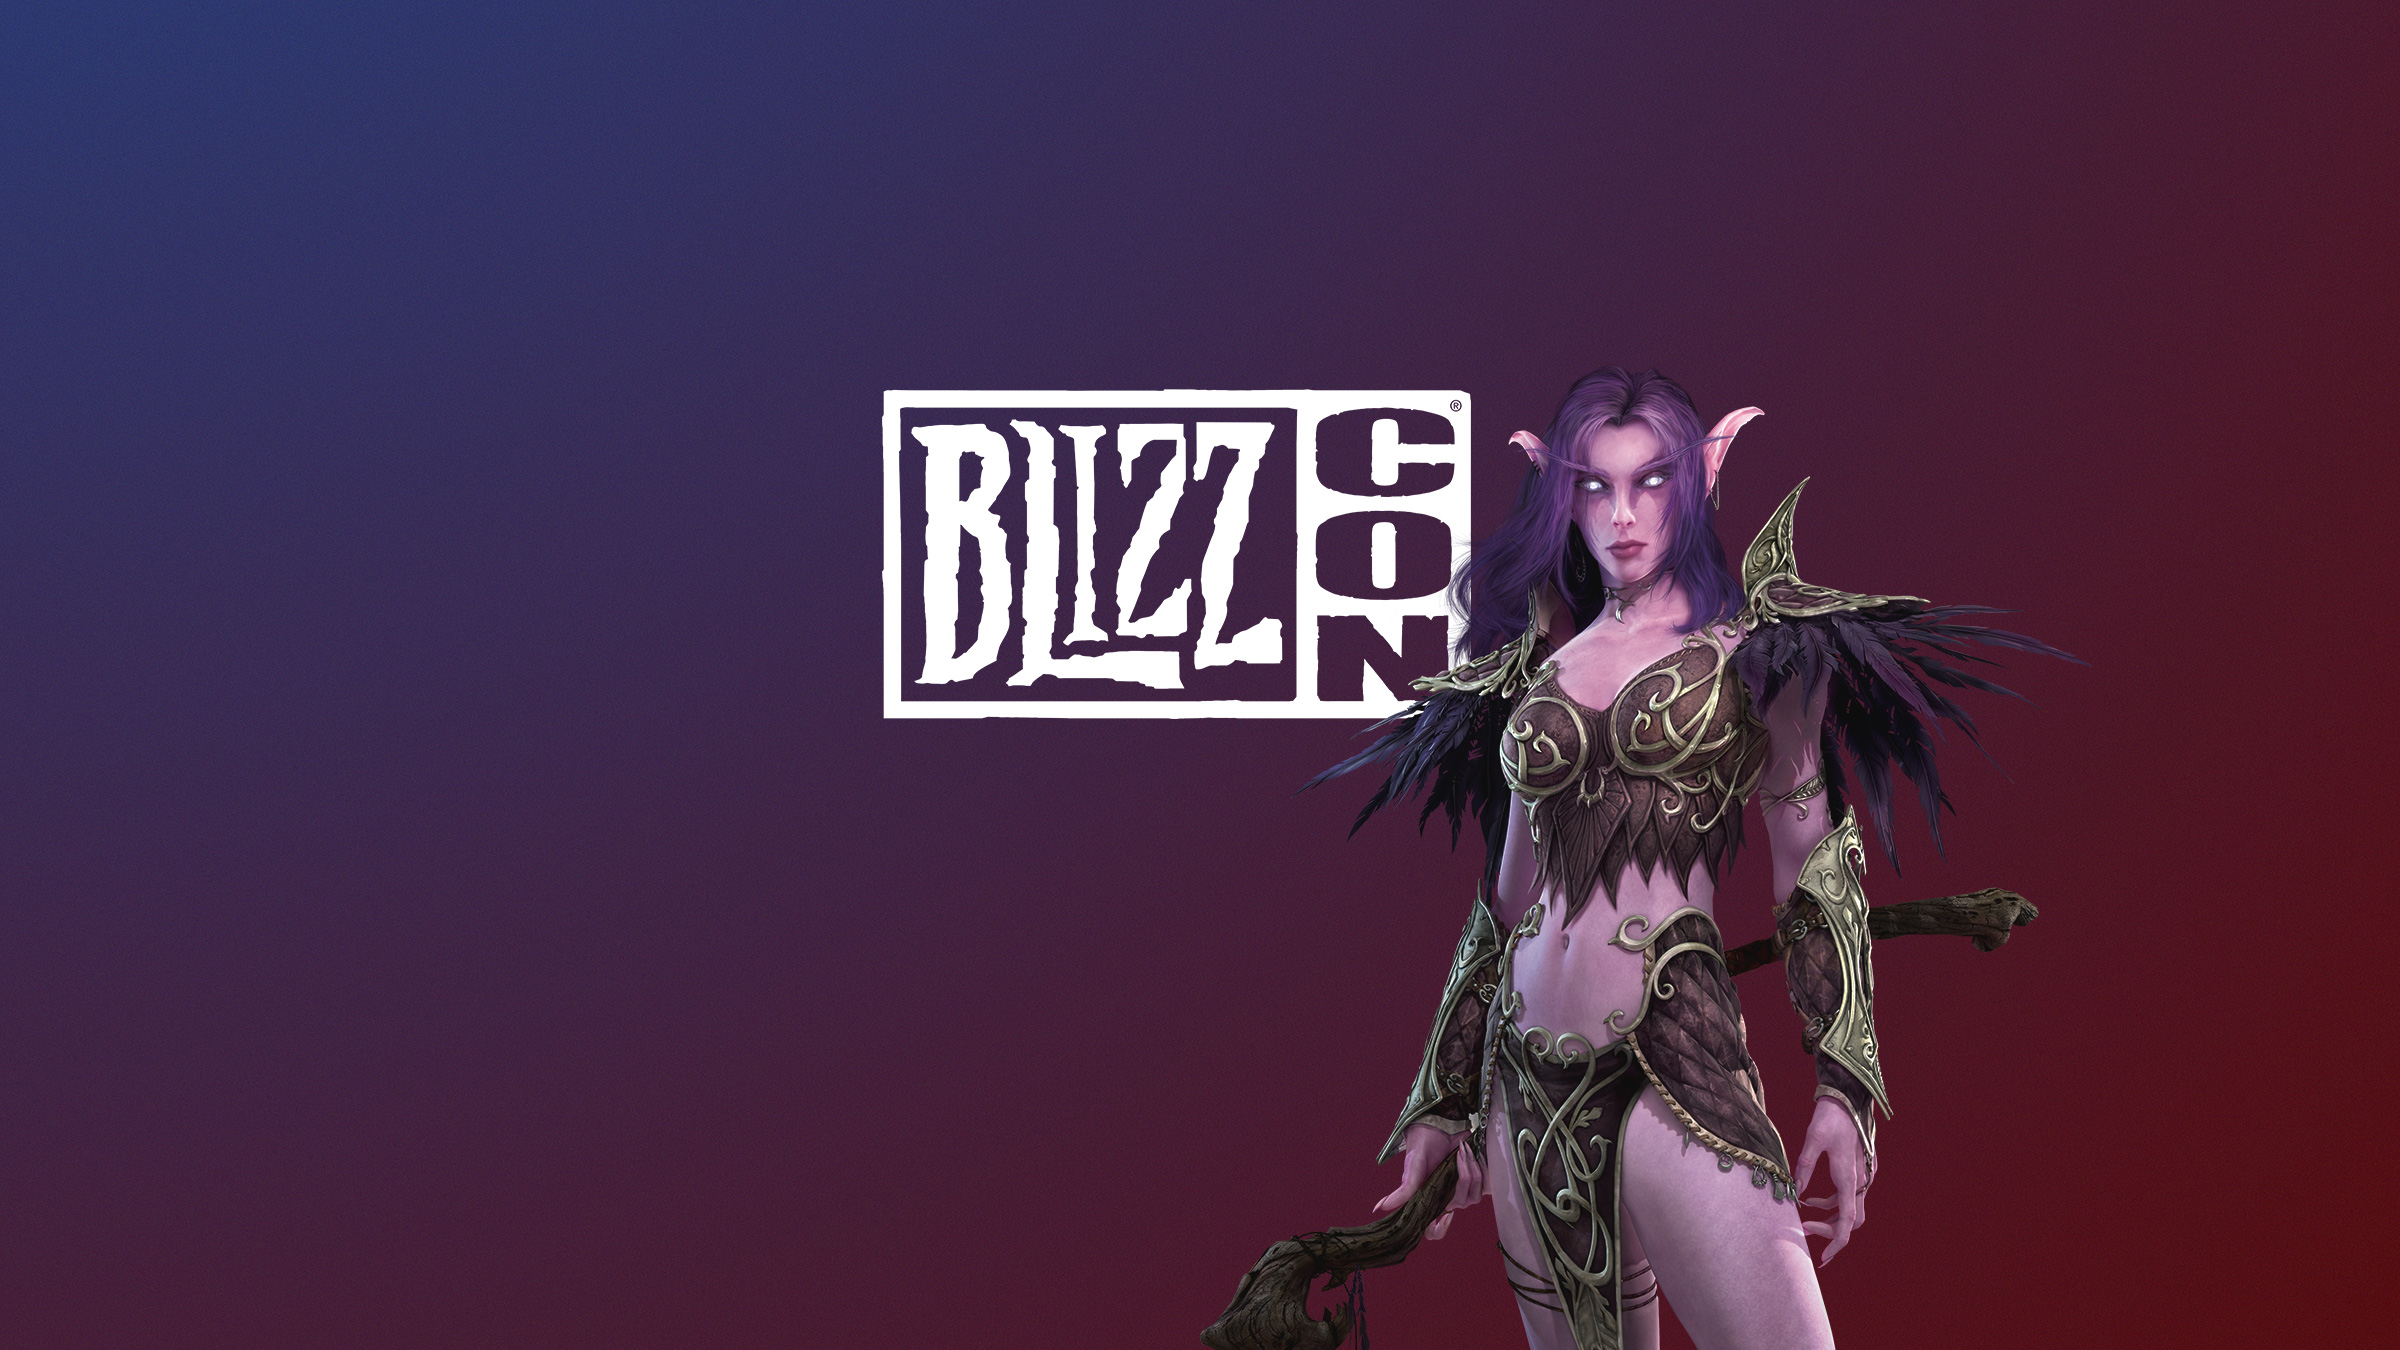 Stay Tuned to World of Warcraft at BlizzCon® 2019